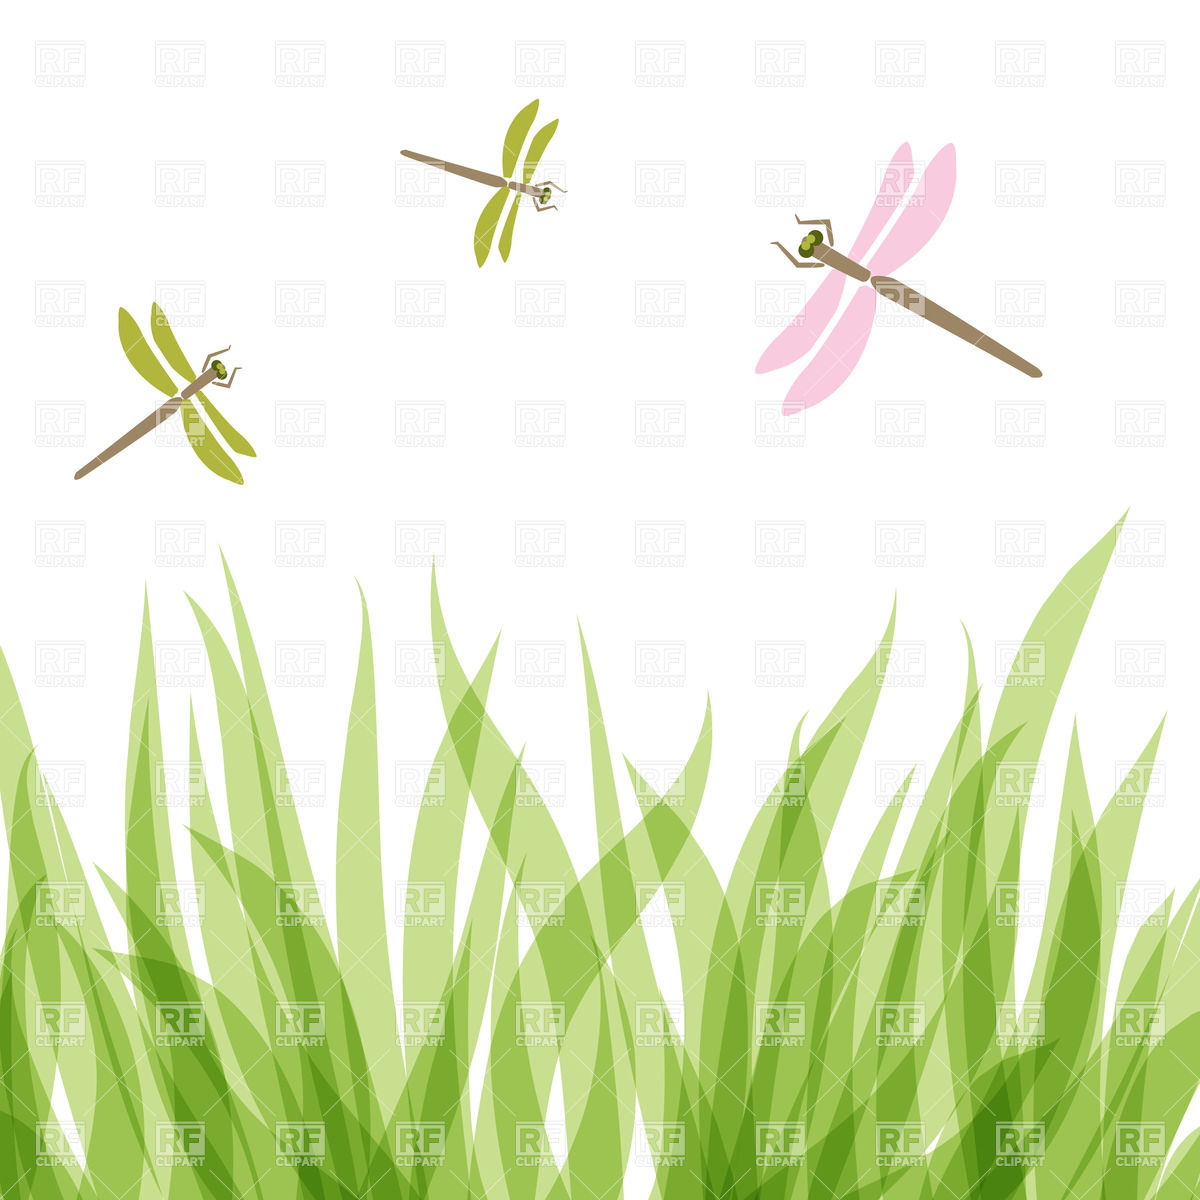 Dragonfly flying over grass Vector Image #22107.